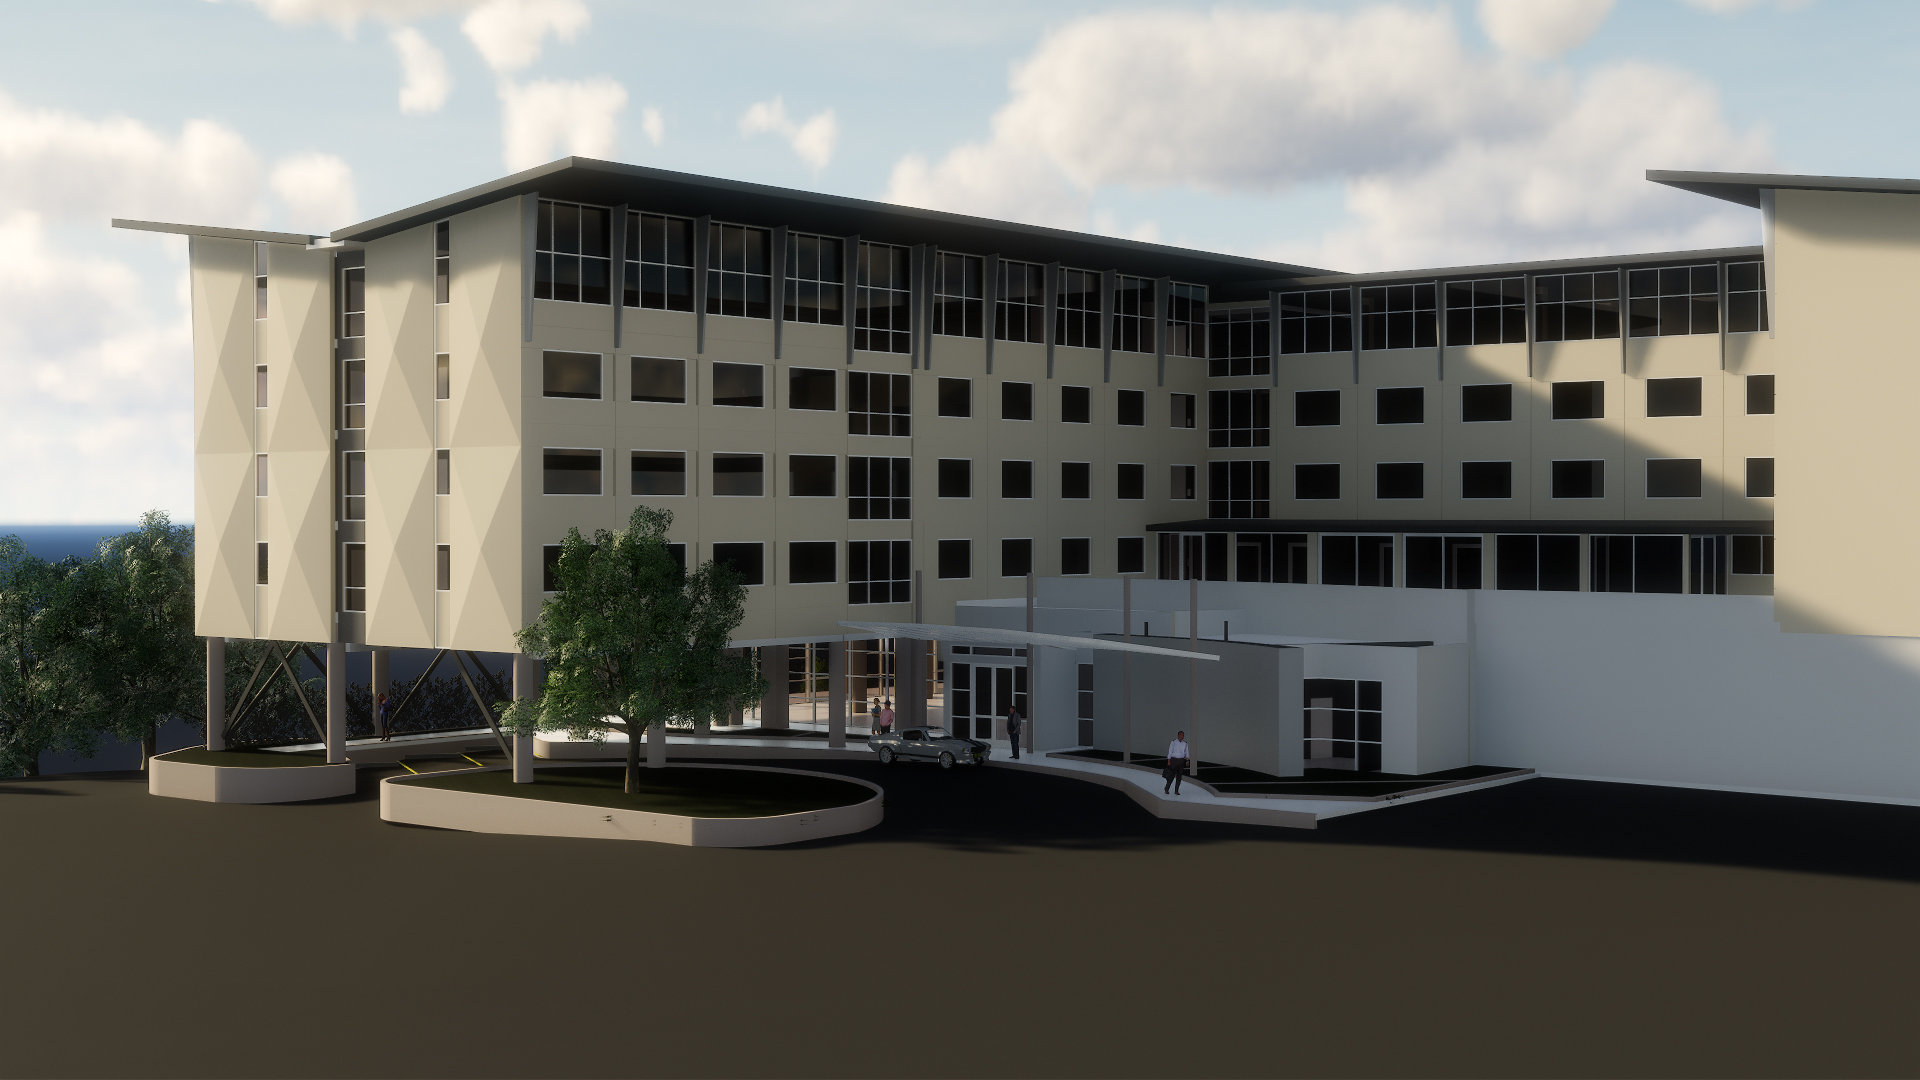 TGH plans 40 room expansion for Novotel Tainui Hamilton hotel